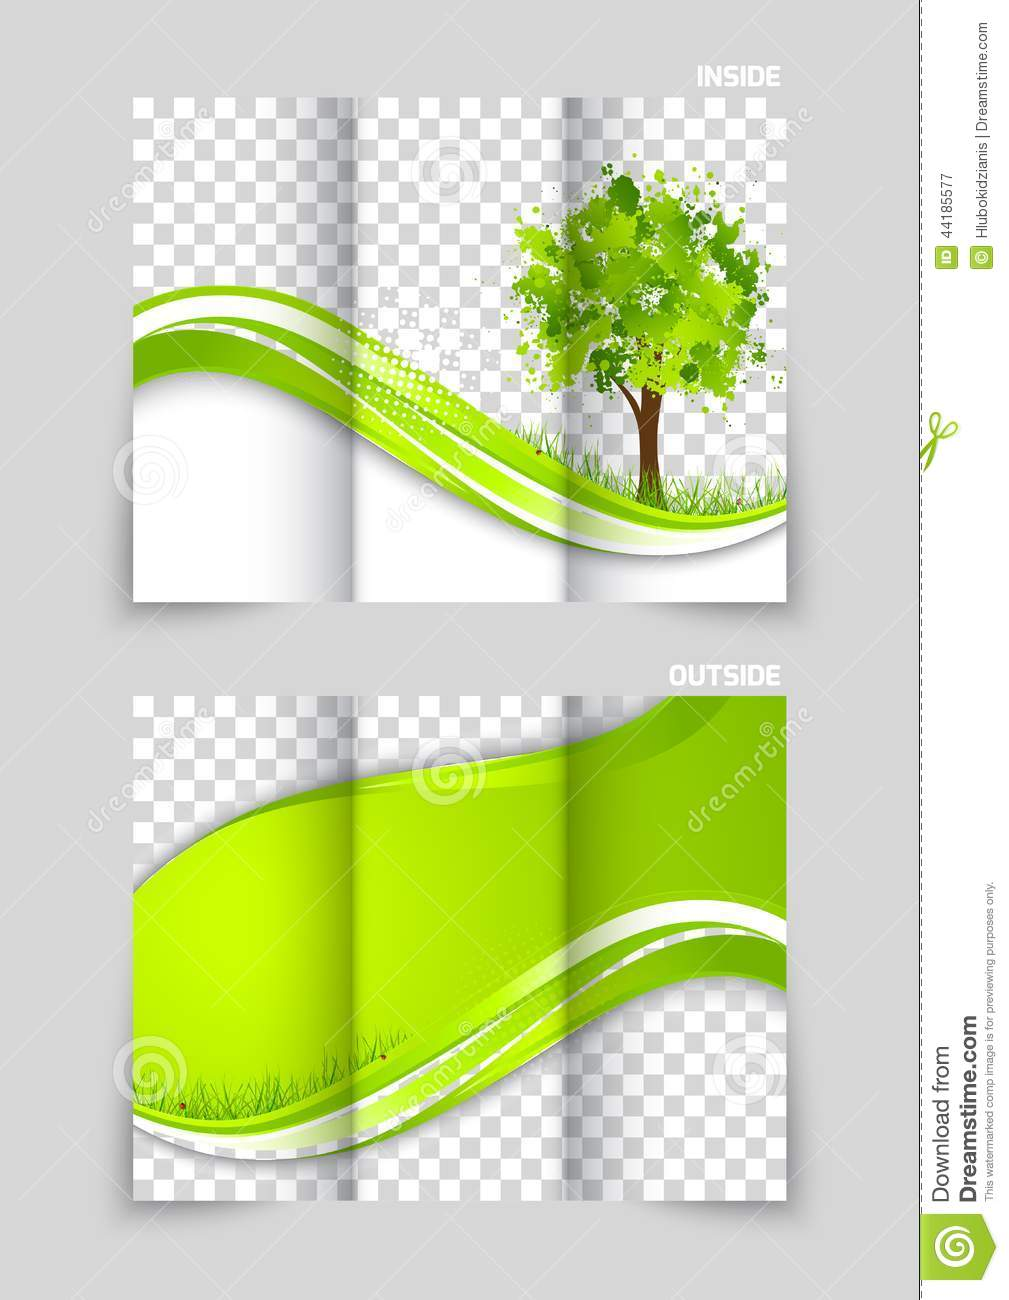 Trifold Brochure Template Design Stock Vector Illustration Of - Template for brochure